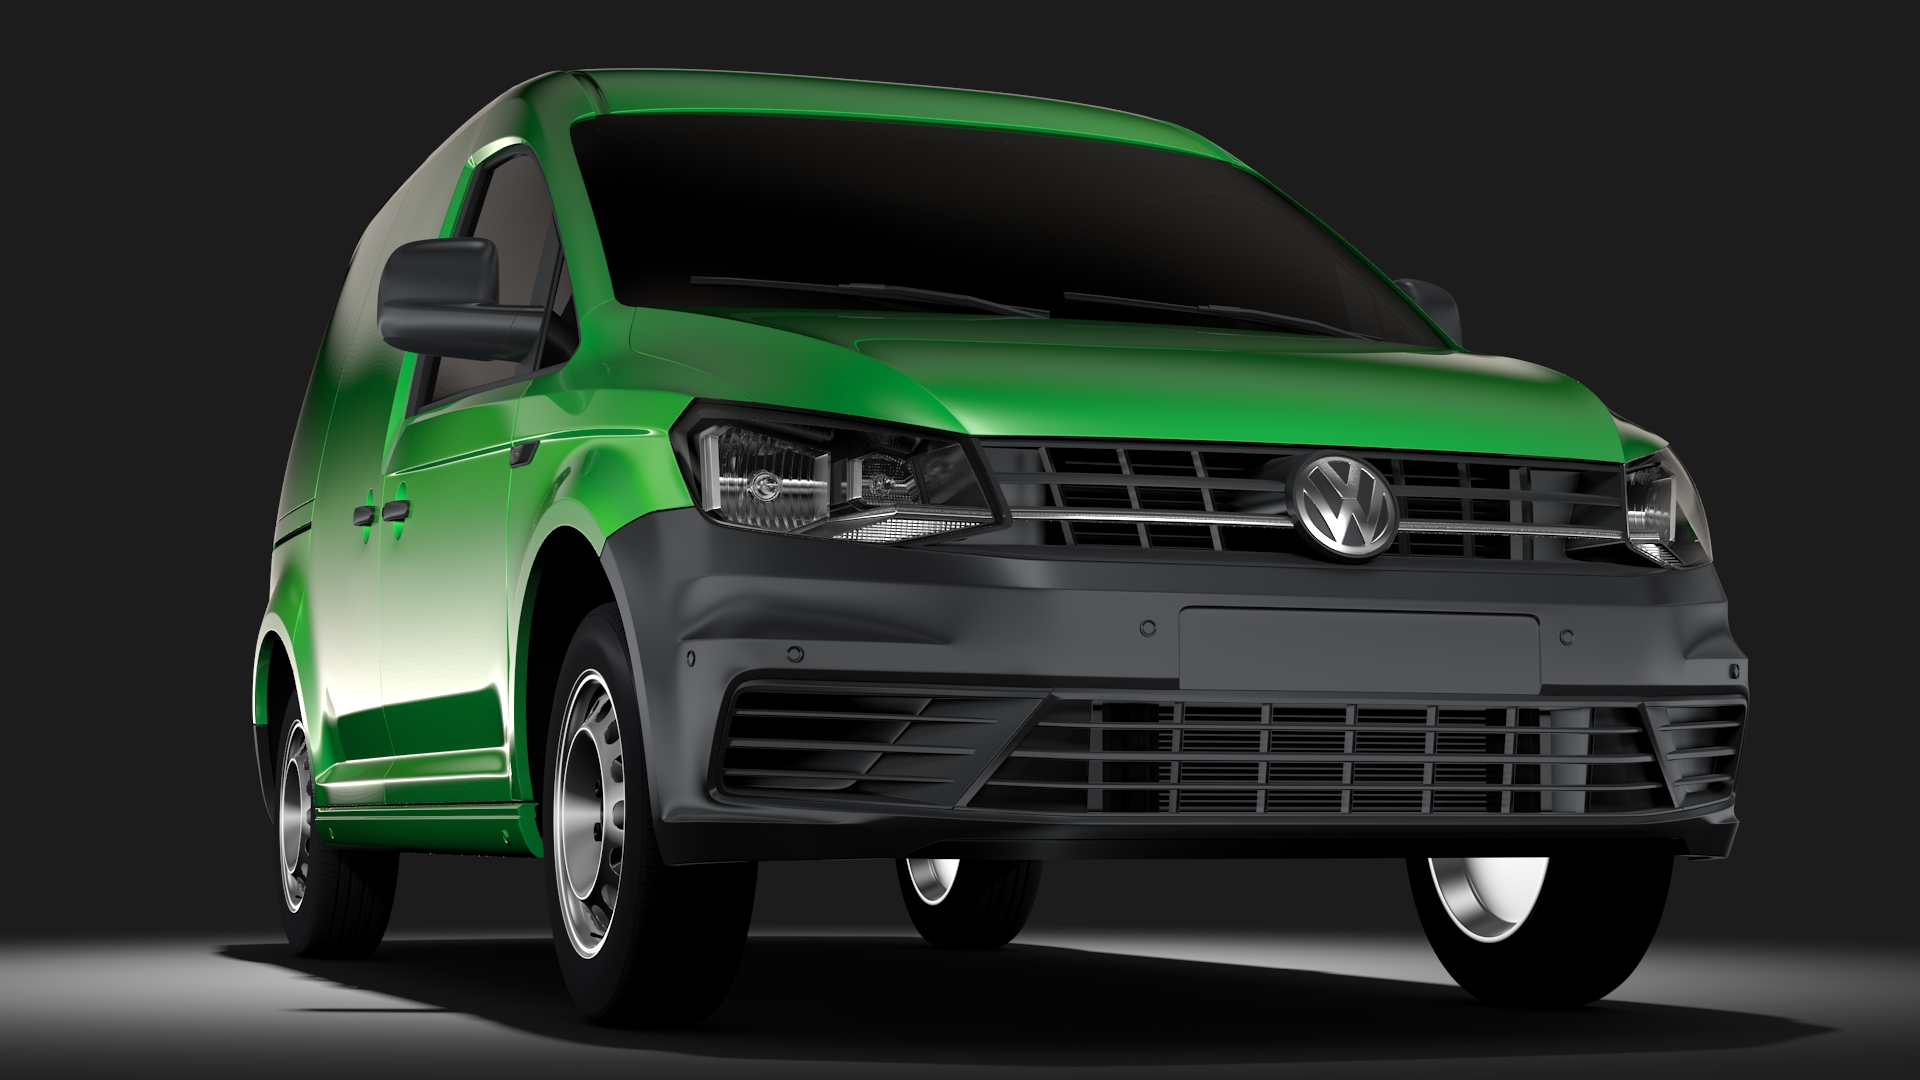 volkswagen caddy panel van l1 2017 3d model. Black Bedroom Furniture Sets. Home Design Ideas